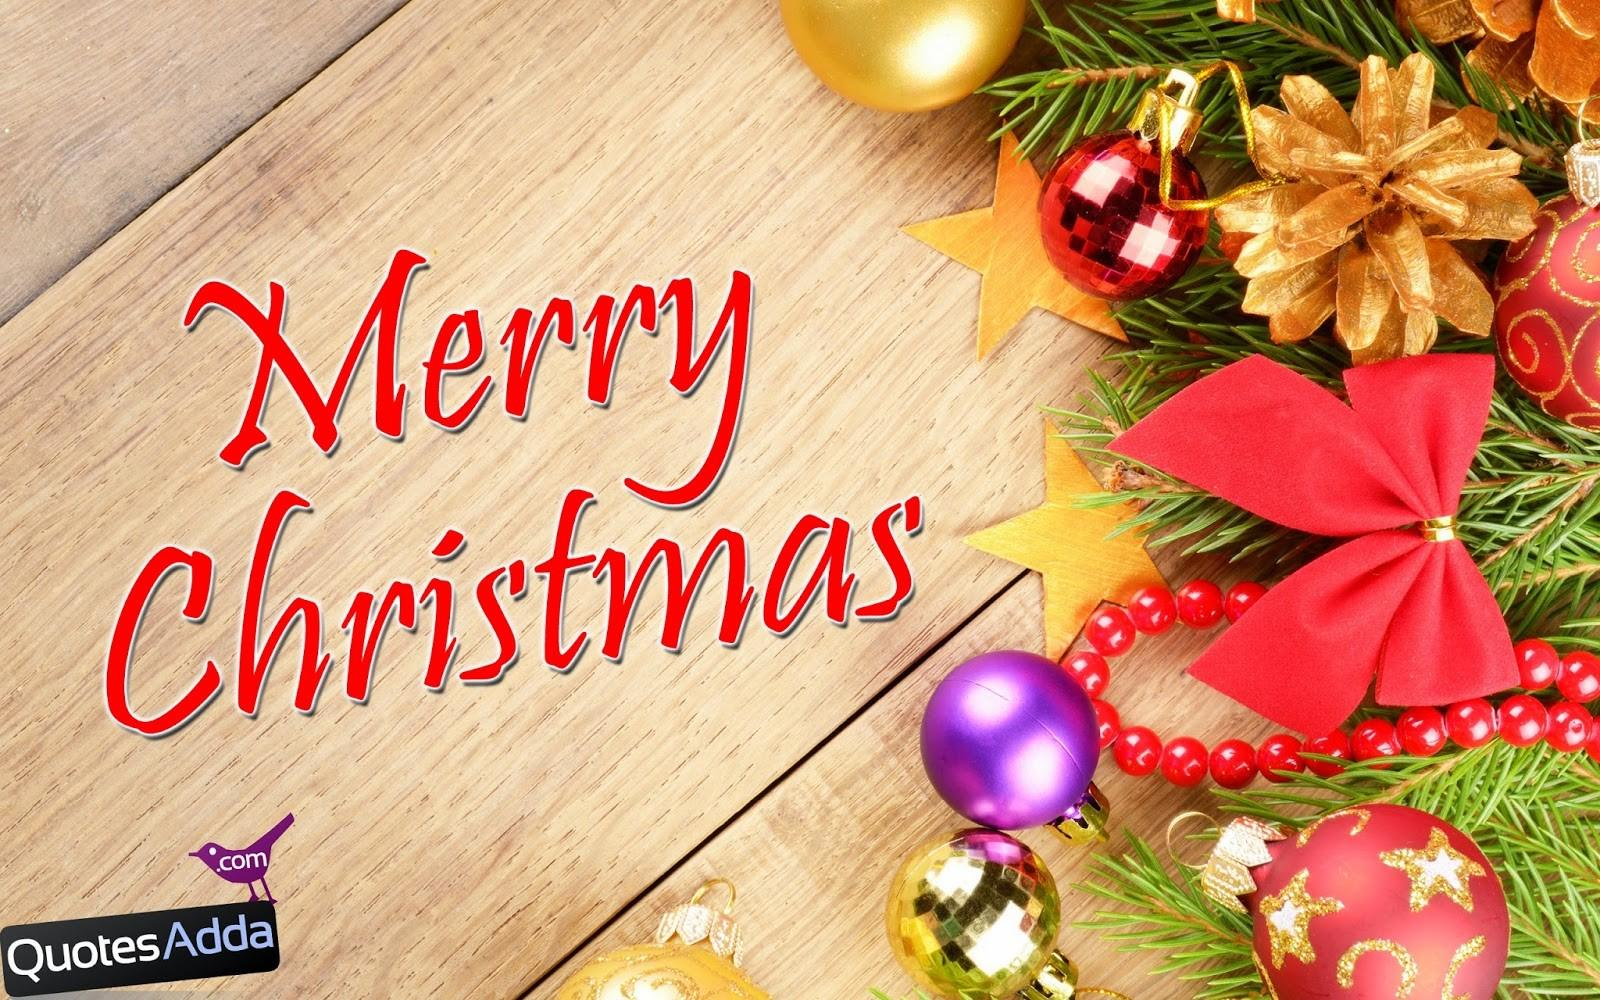 Merry Christmas Quotes 2016 Family Friends Relatives